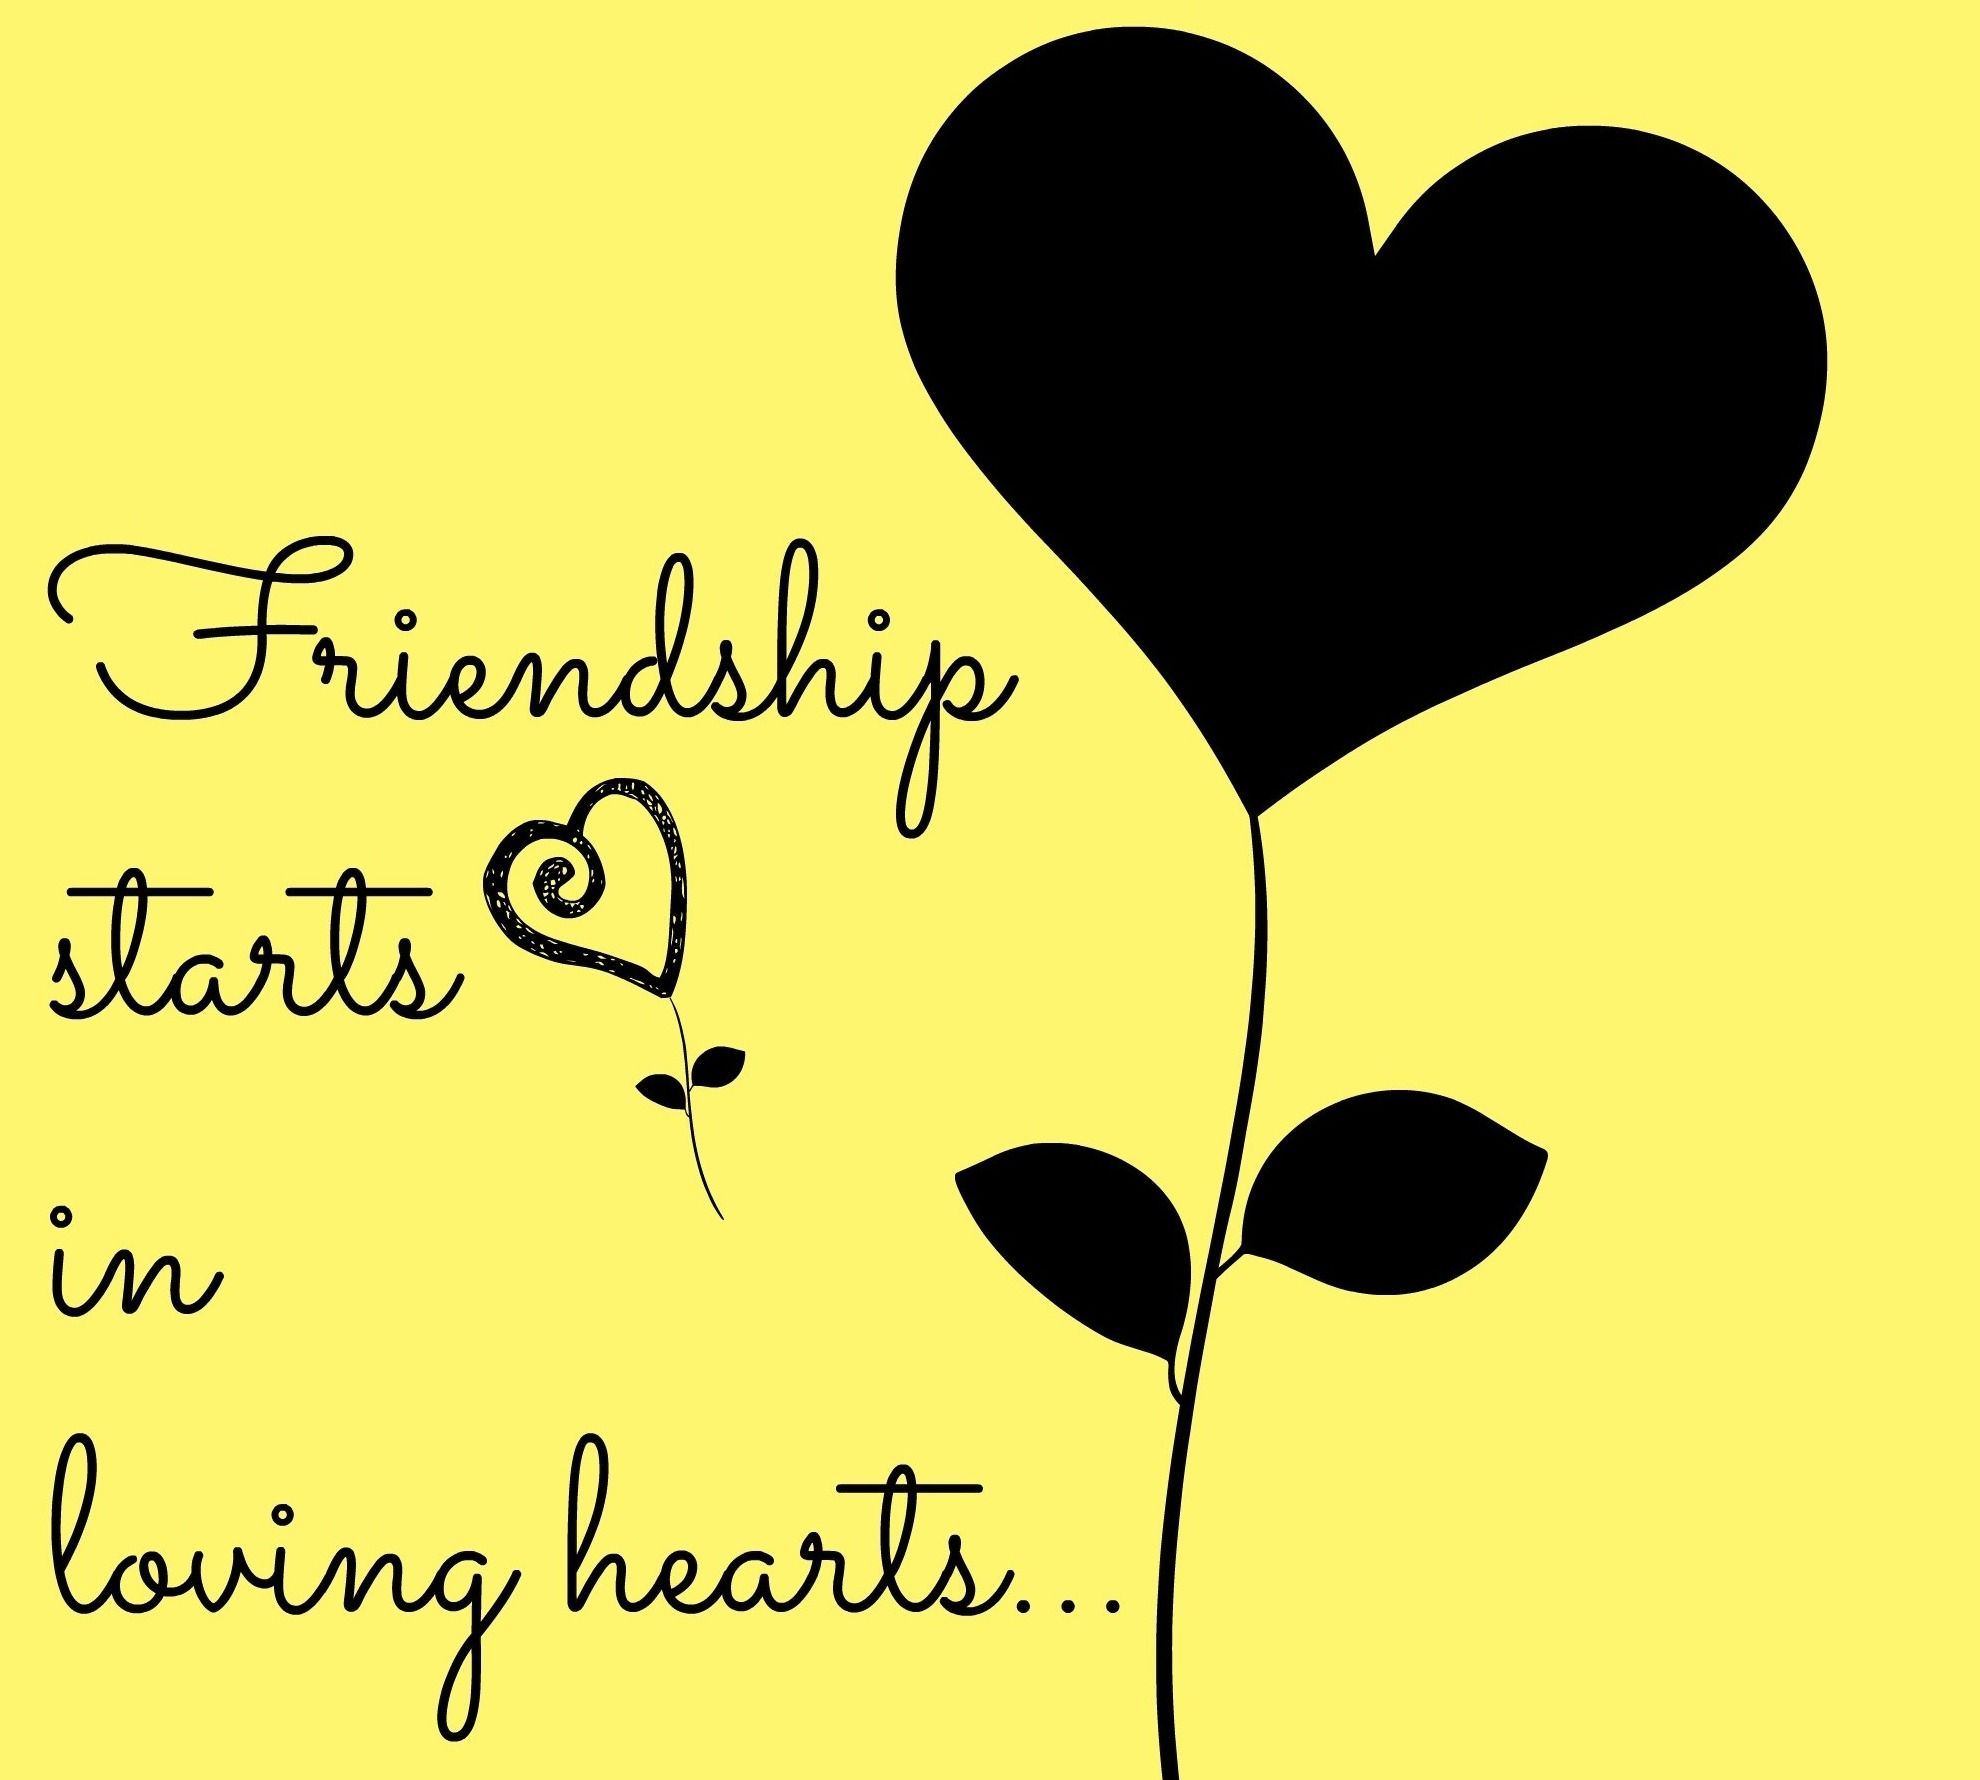 Friendship Quotes And Sayings Friendship Wallpaper Friendship Quotes Images Love Friendship Quotes